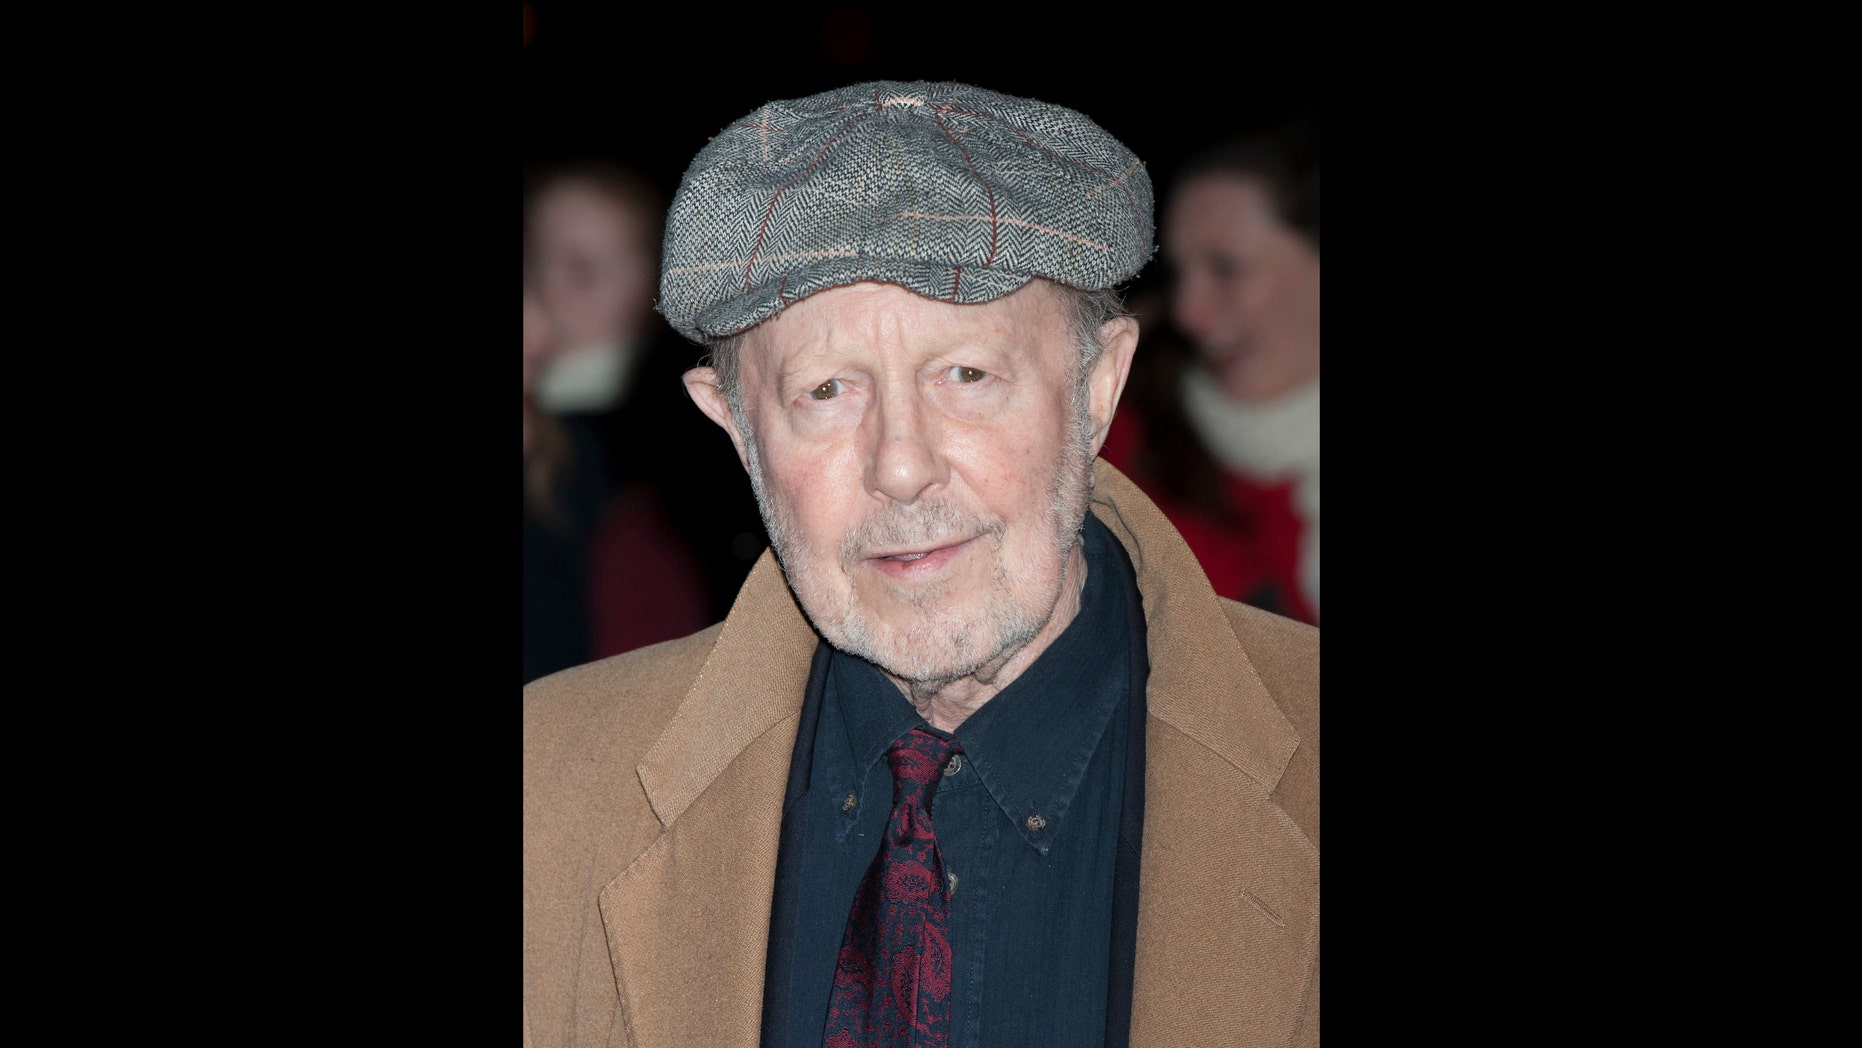 FILE - On this file photo of Thursday, January 19, 2012, Nicolas Roeg arrives for the Film Critics Circle Awards in a central London event. The son of Nicolas Roeg says that the prominent British director has died. He was 90. Nicolas Roeg Jr. told the British press association that the director of